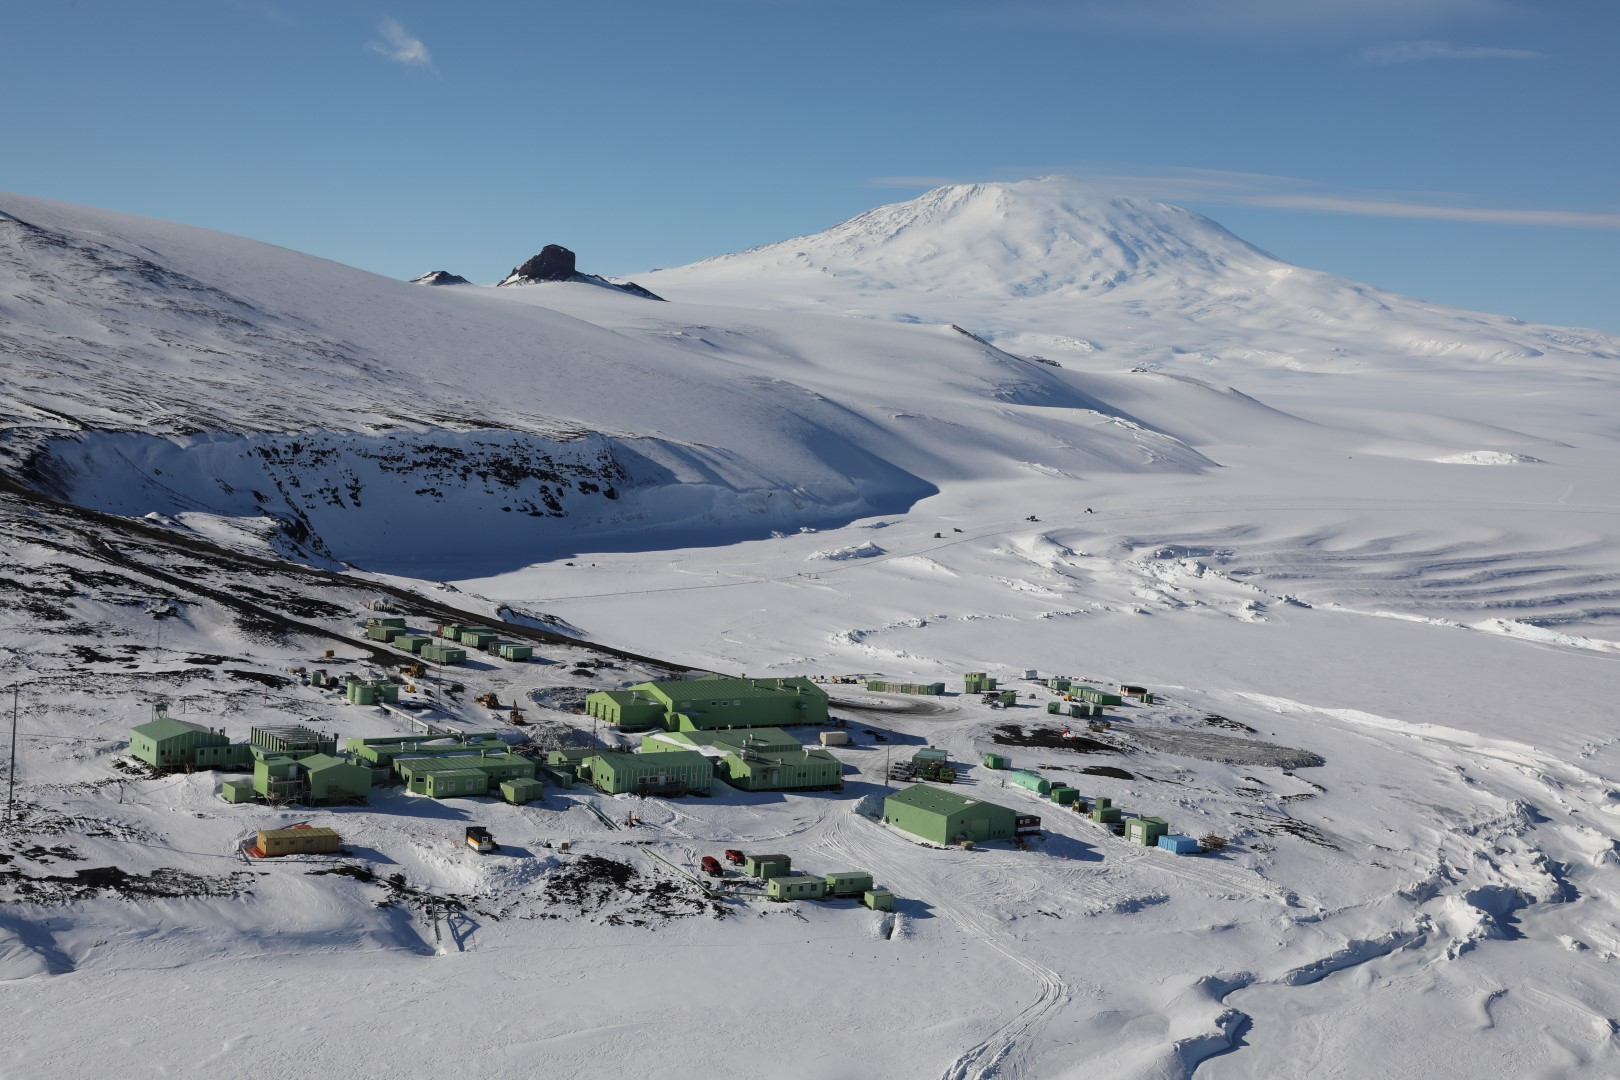 The Scott Base Antarctic research facility located at Pram Point on Ross Island. Mount Erebus is also pictured in the background.